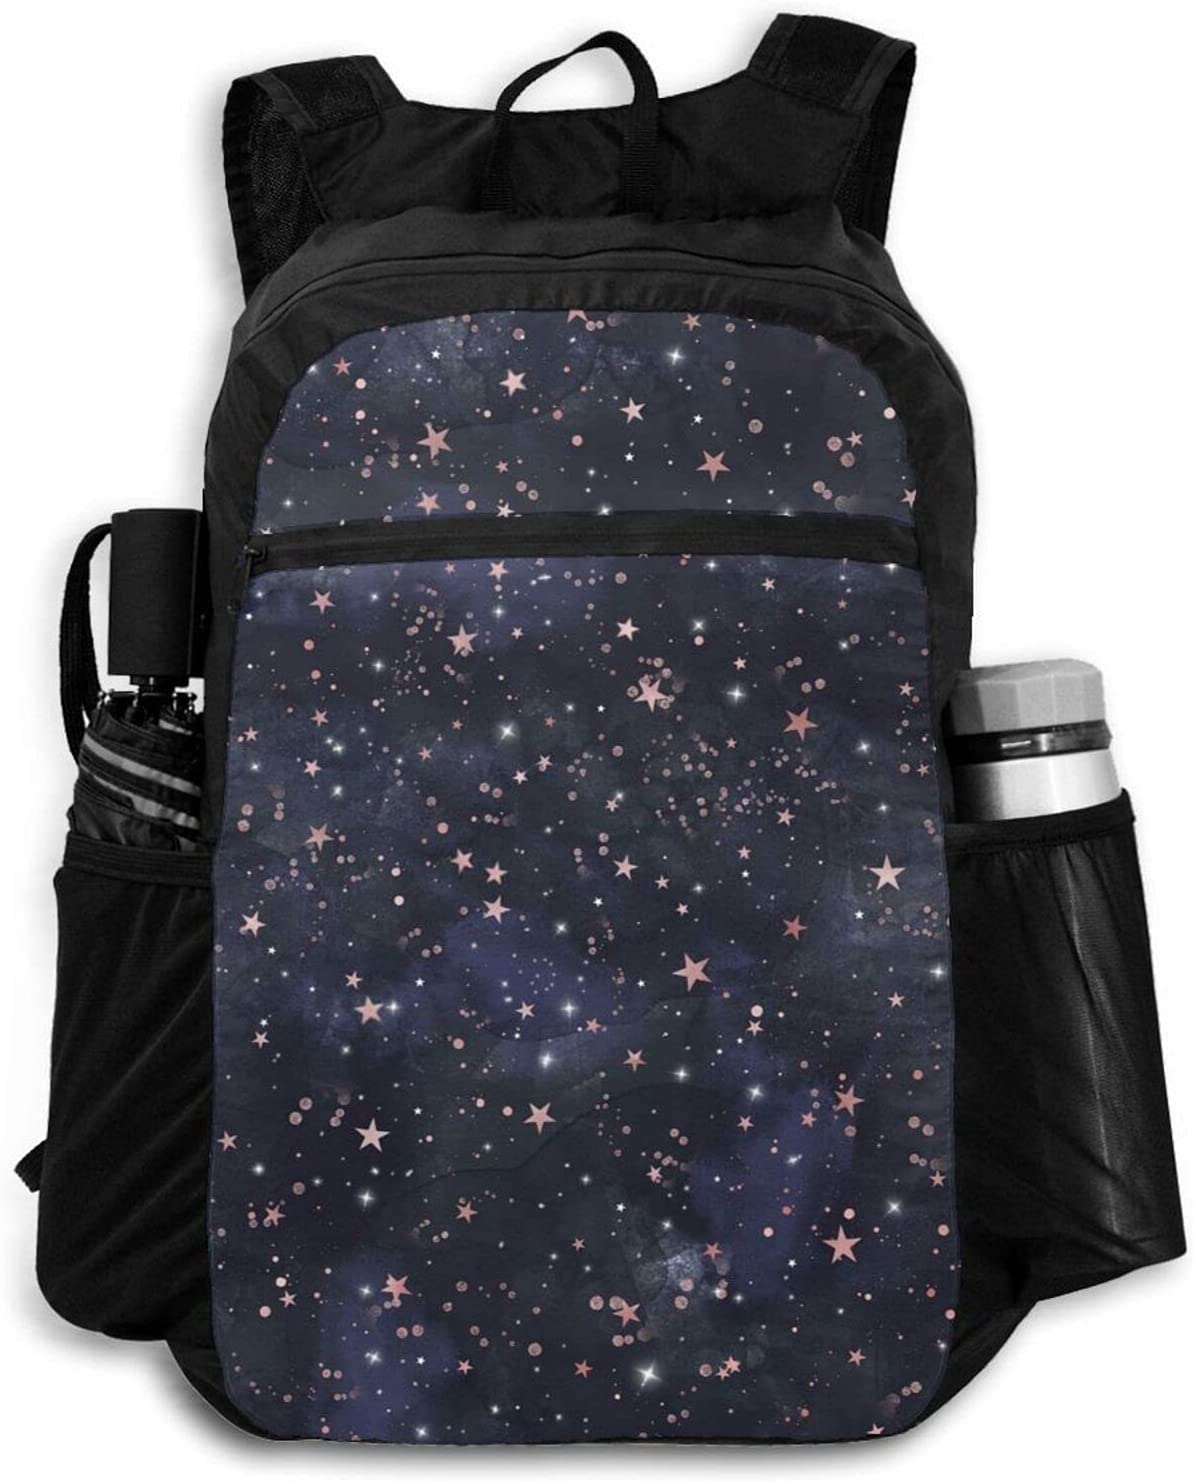 Outlet ☆ Free Shipping Zolama Blue Pink Starry Night Sky P Women Backpacks for New mail order Cute Men